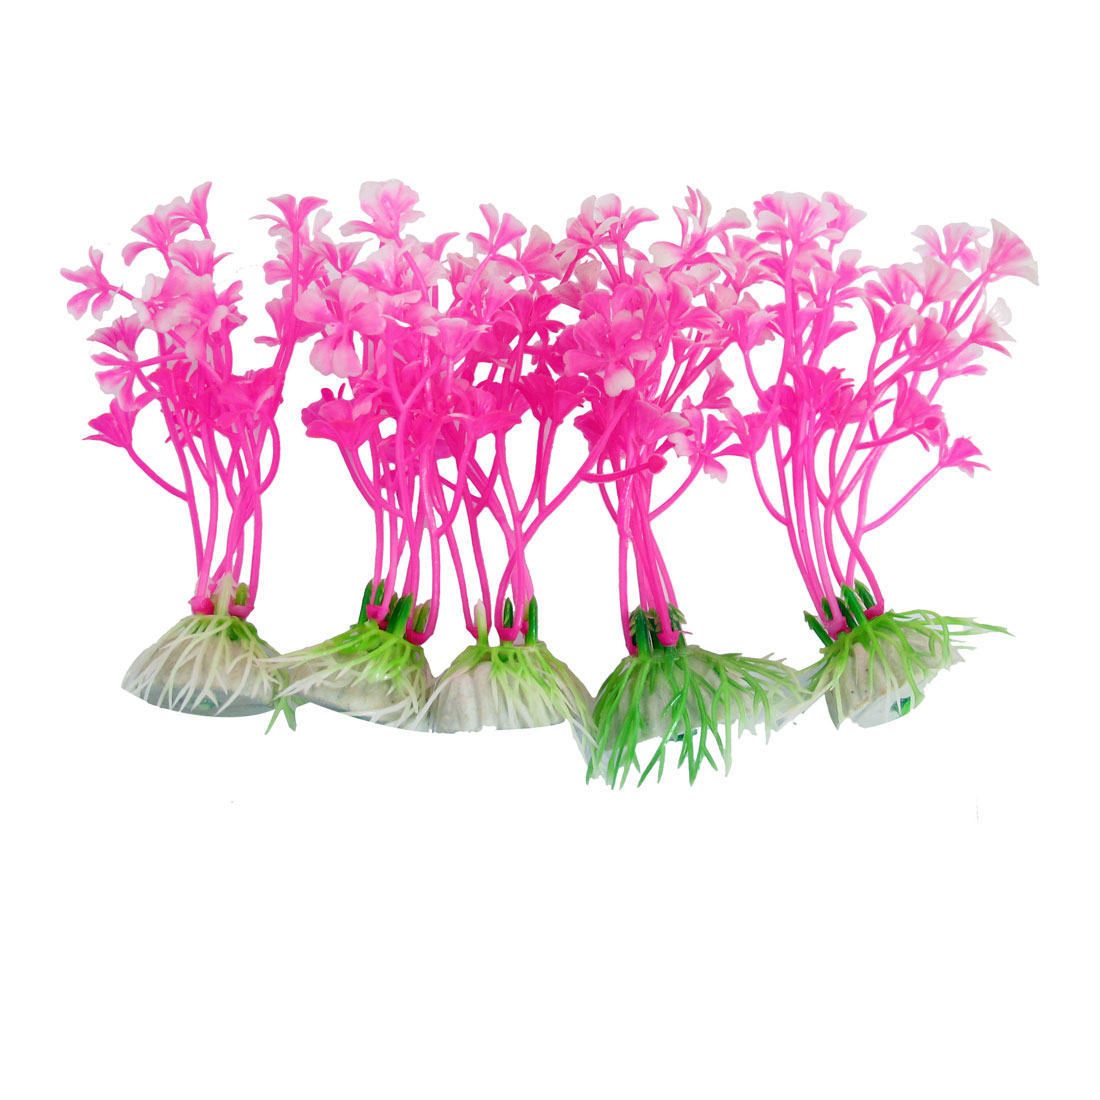 "10 Pcs Underwater 4.3"" High Fuchsia Manmade Plant Decor for Aquarium Fish Tank"